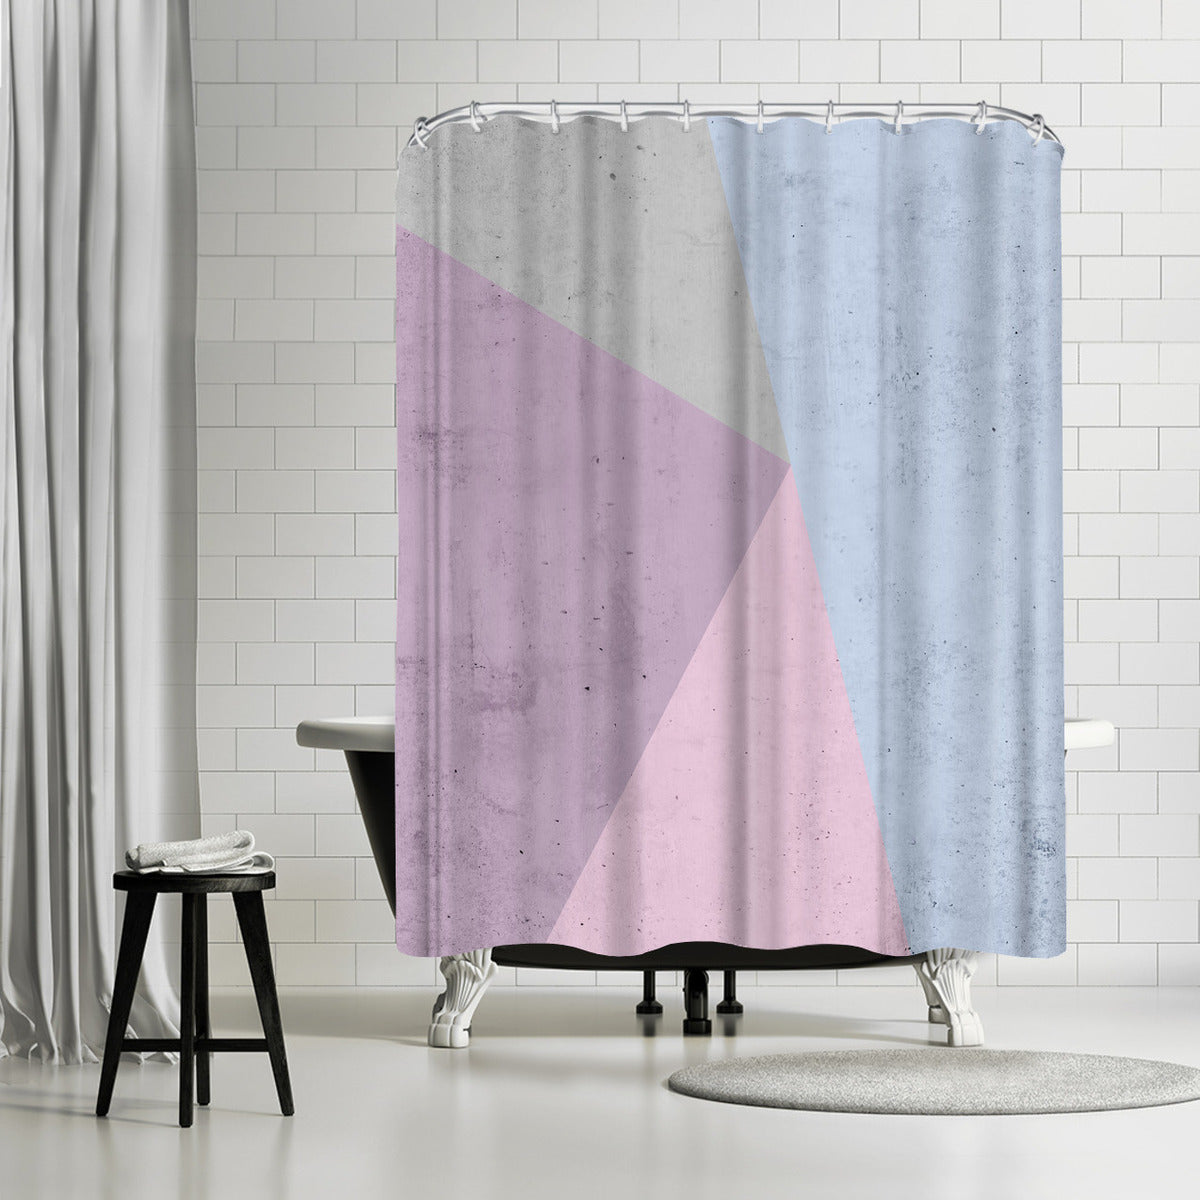 Cold Tones Geometry by Emanuela Carratoni Shower Curtain - Shower Curtain - Americanflat